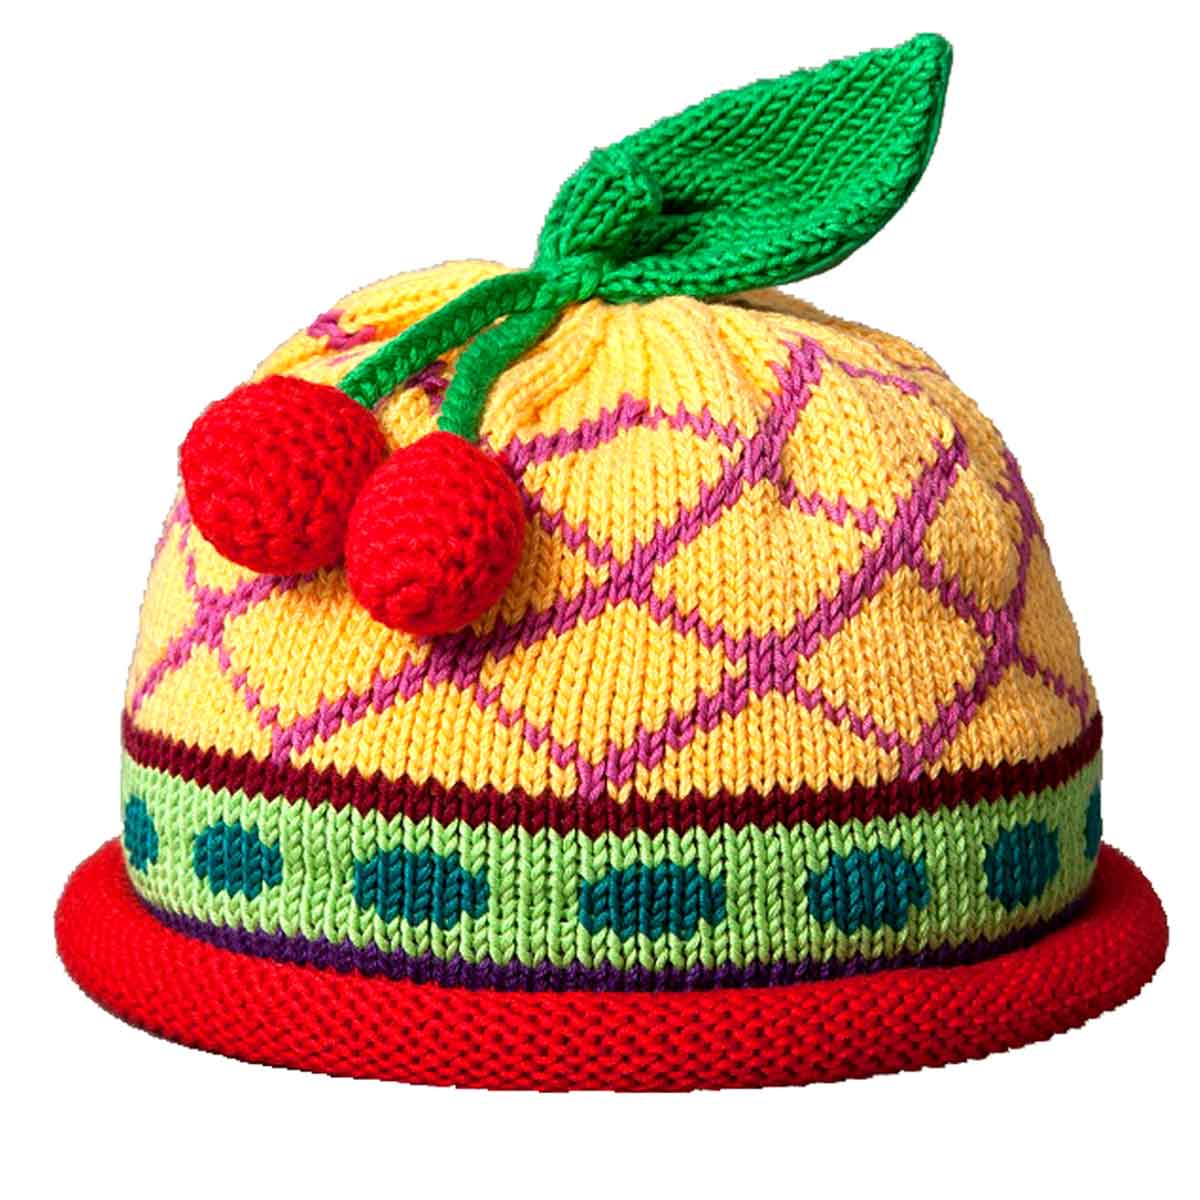 Cherry Knit Hat - Yellow Diamond Design - Margareta Horn Design 6d429fcbcab